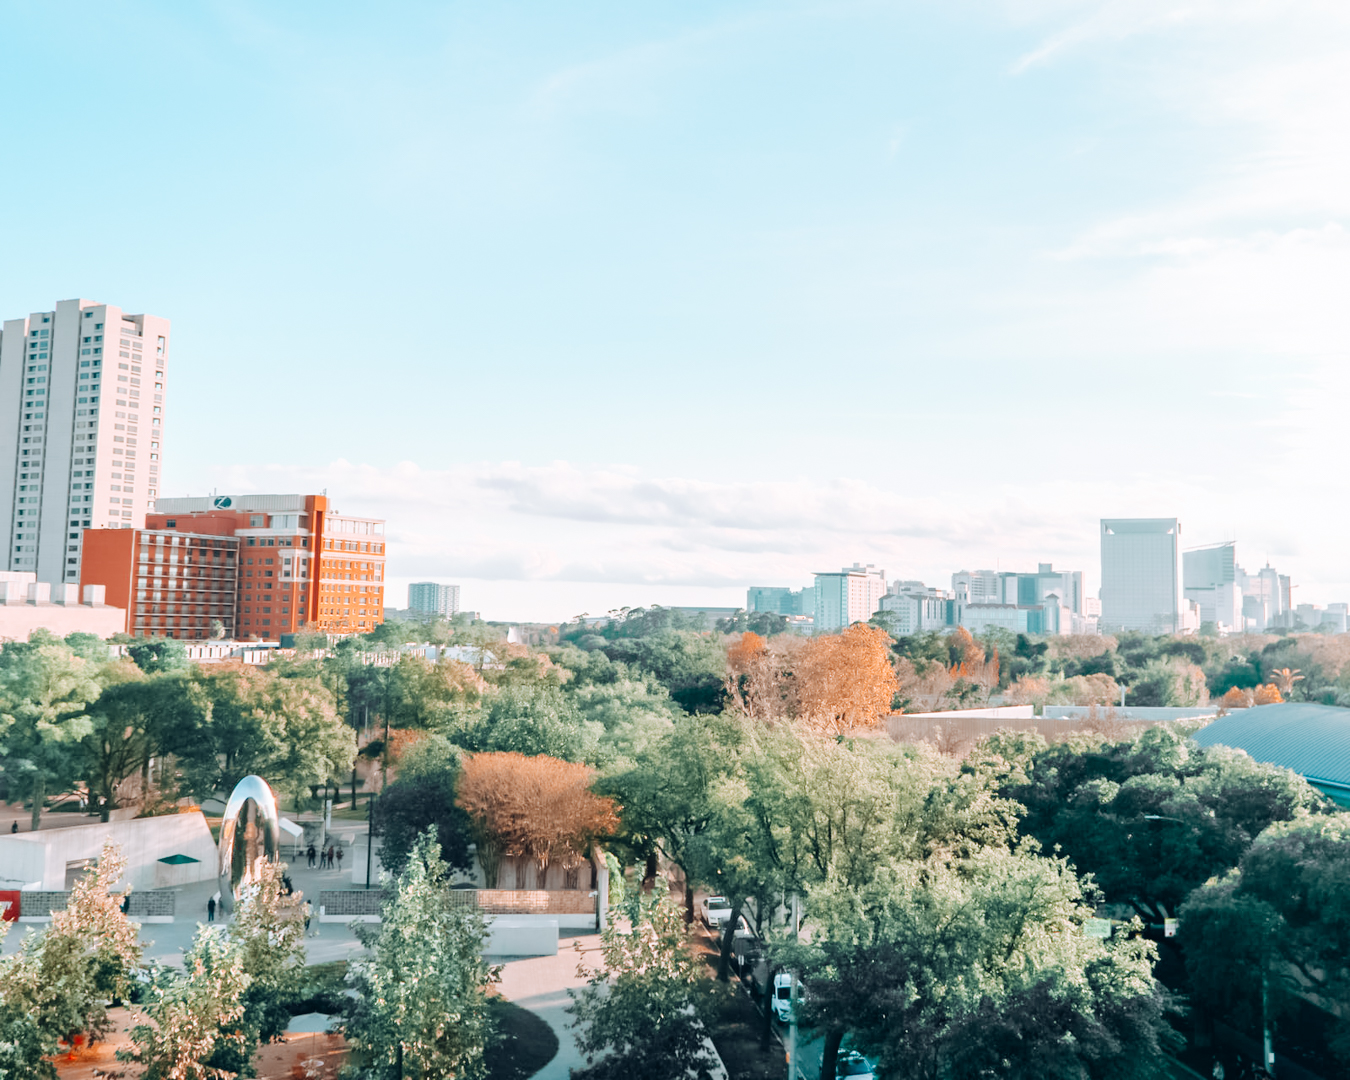 View in Houston